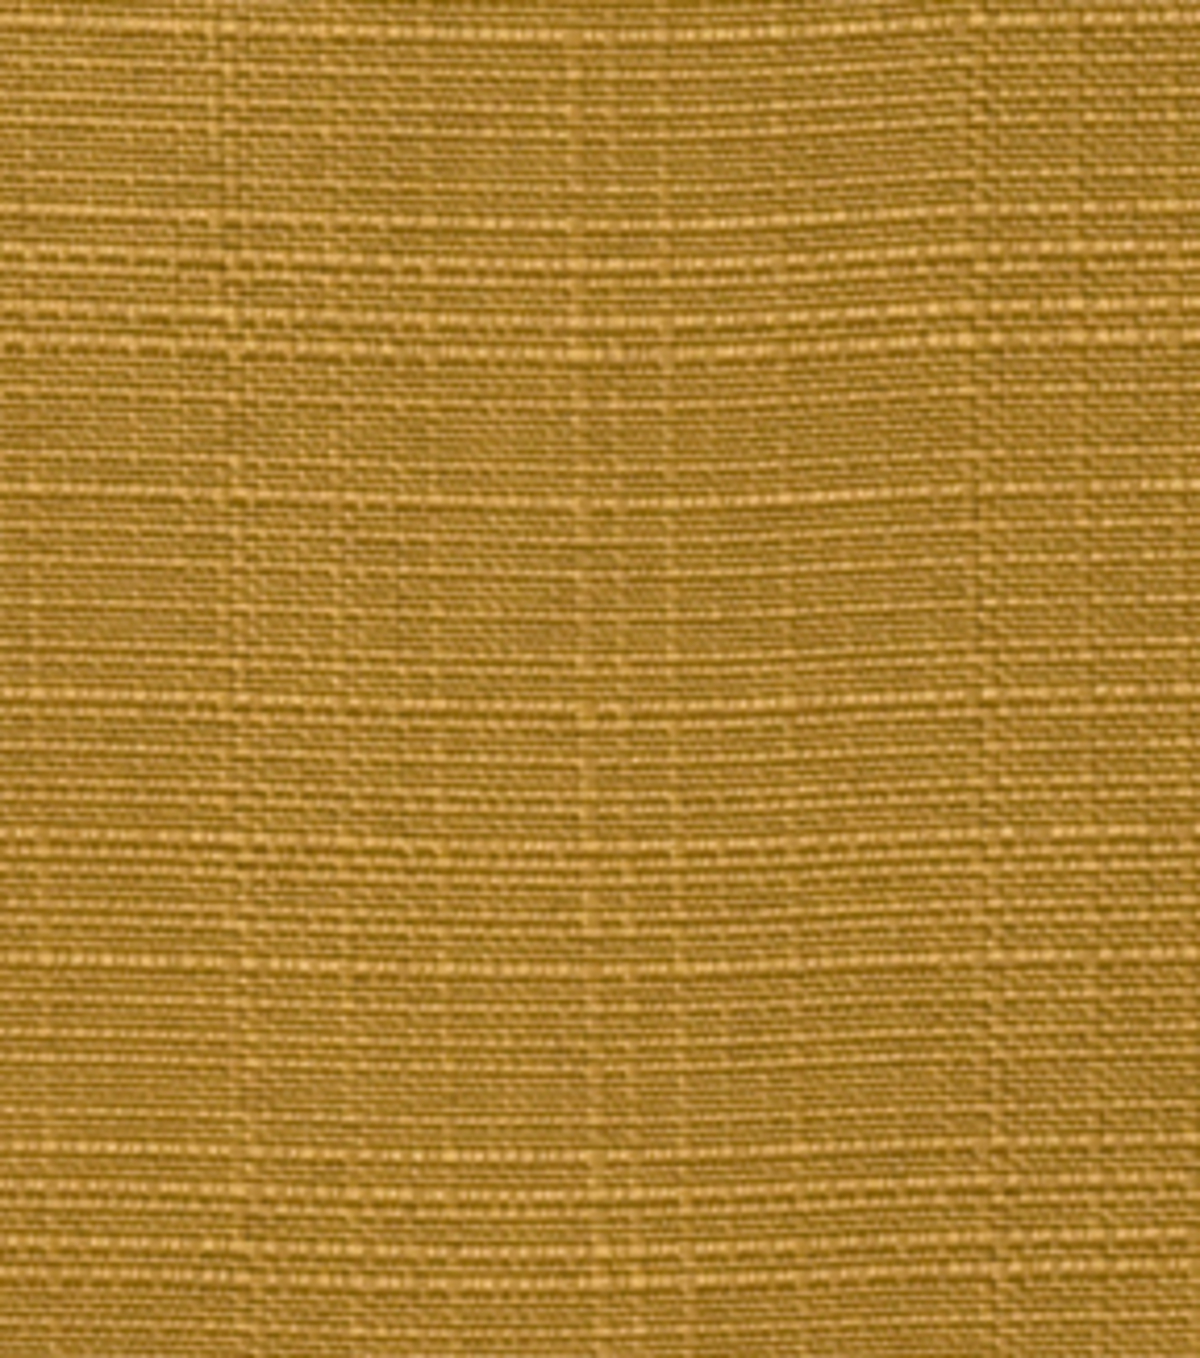 8\u0027\u0027x8\u0027\u0027 Home Decor Fabric Swatch-Solid Fabric Eaton Square Kung Copper